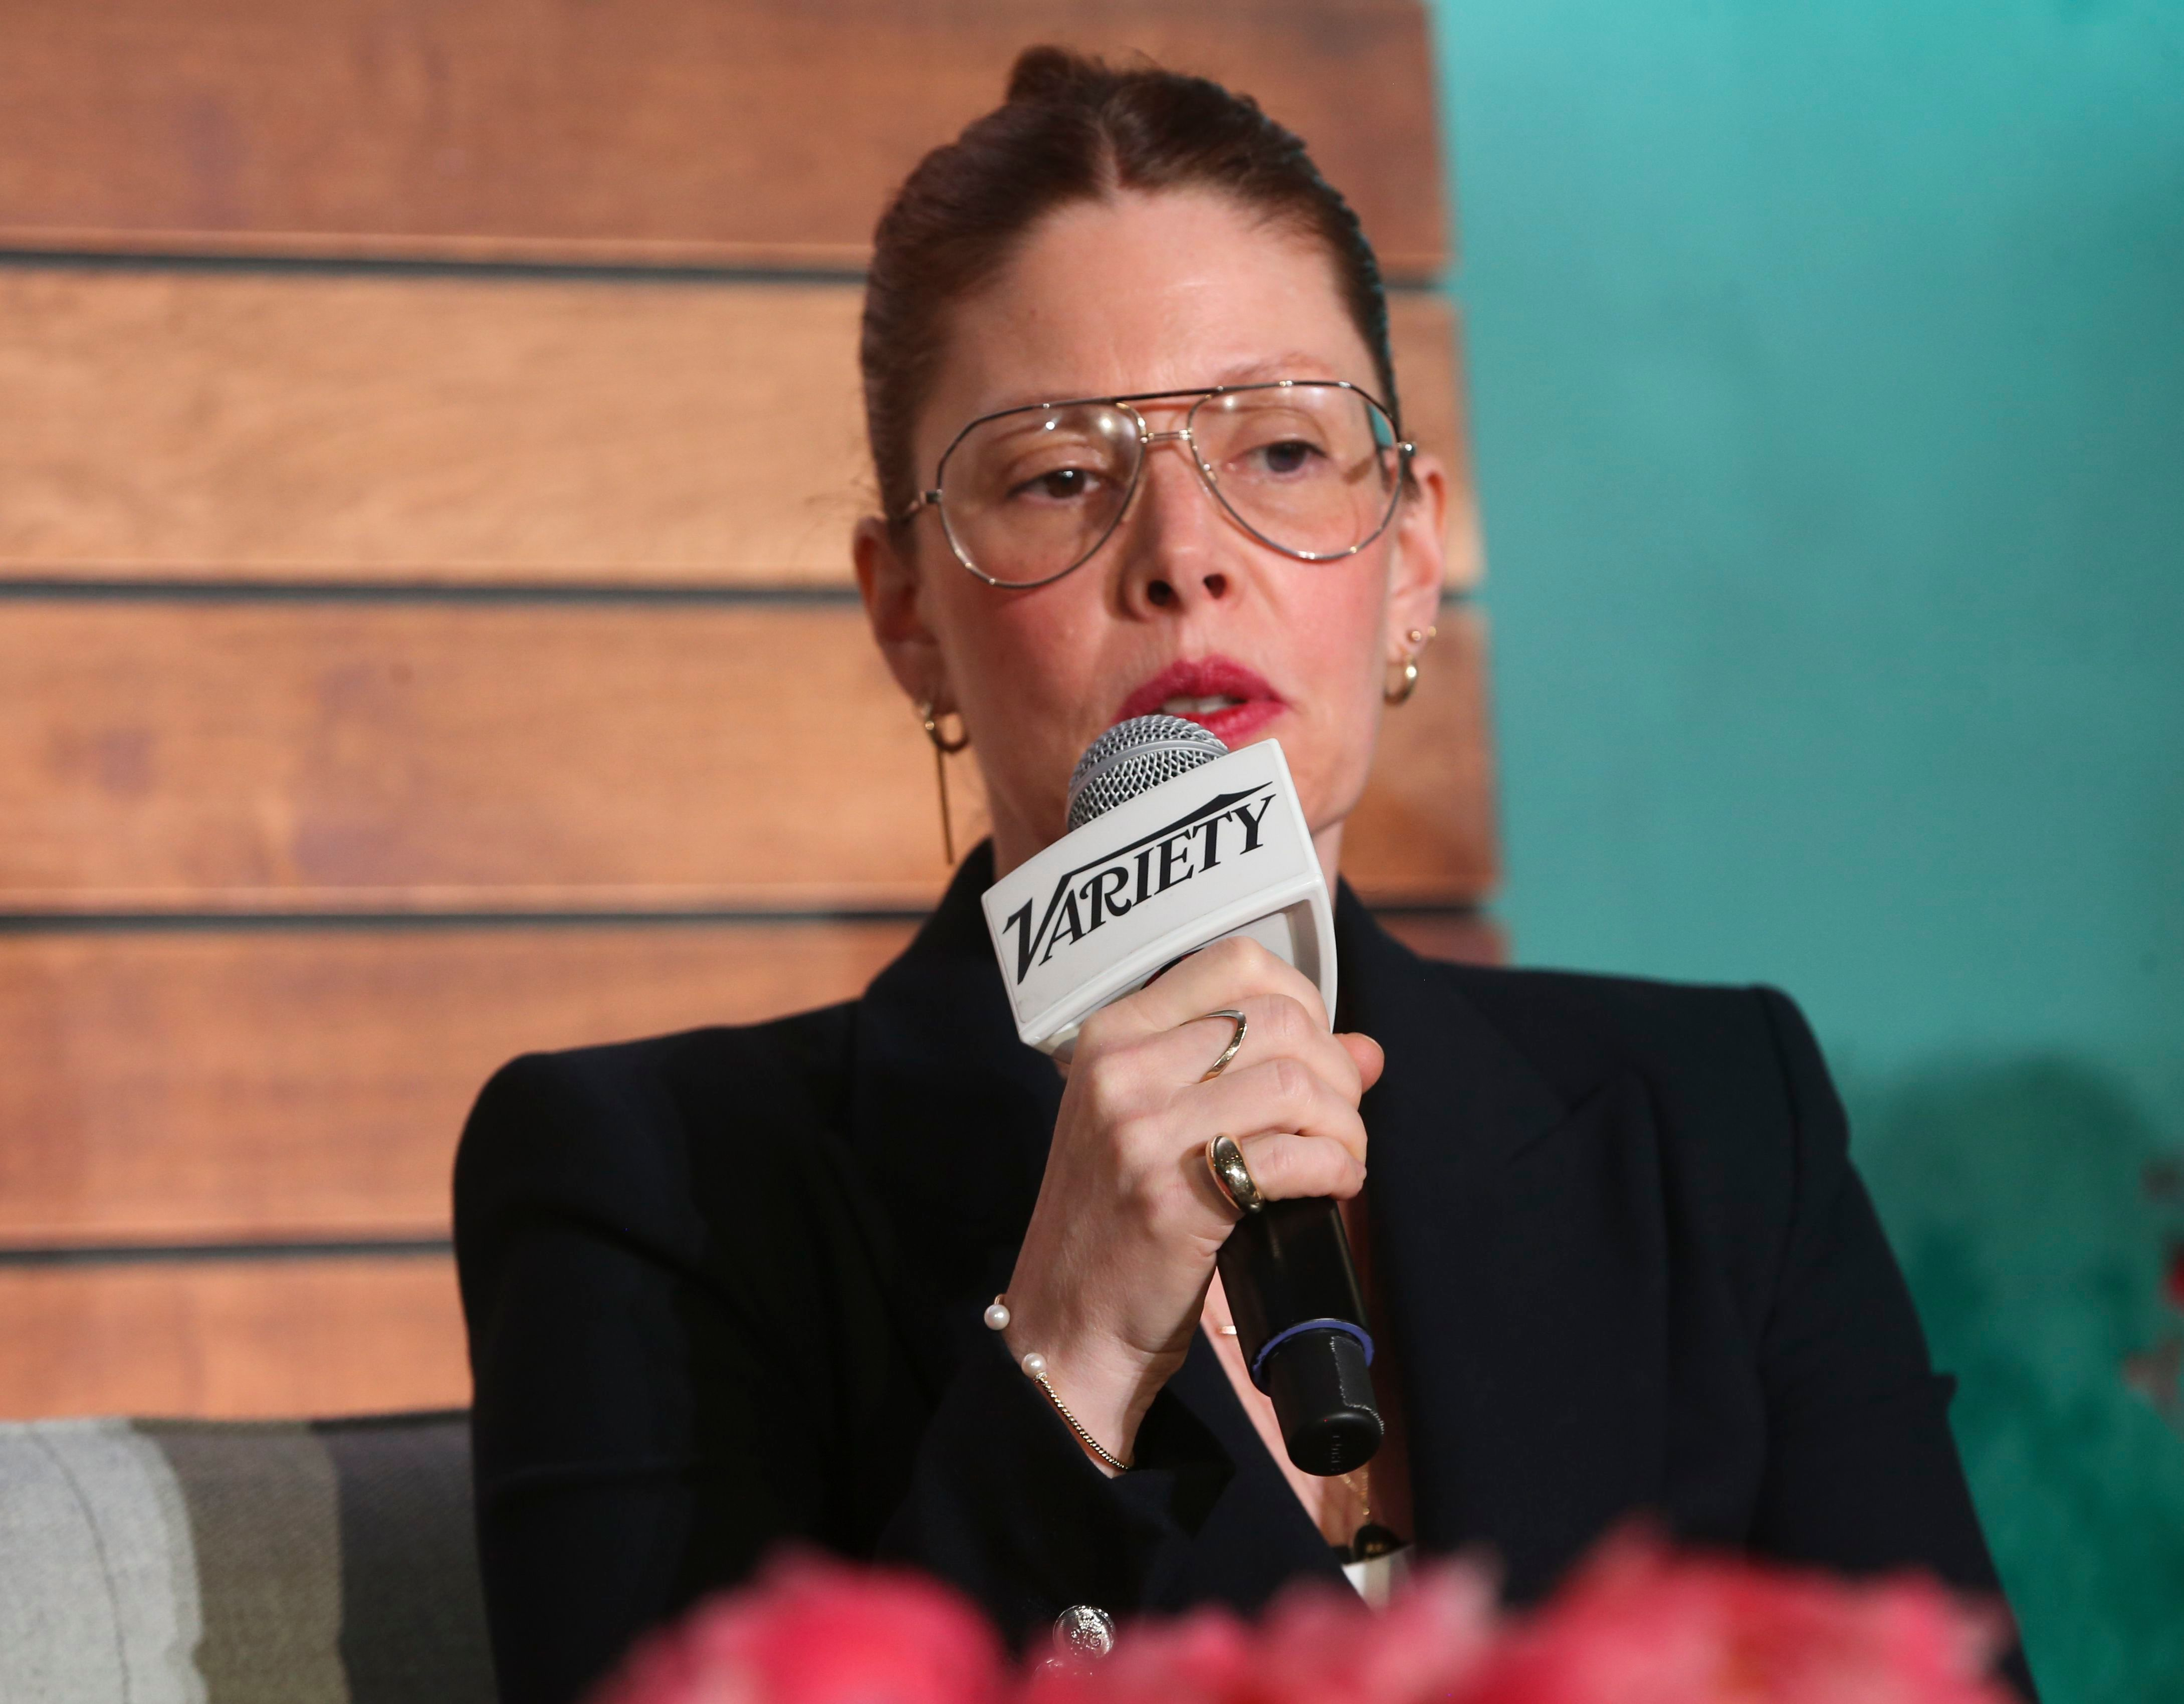 Christene BarberichVariety Inclusion Summit, Los Angeles, USA - 09 May 2019